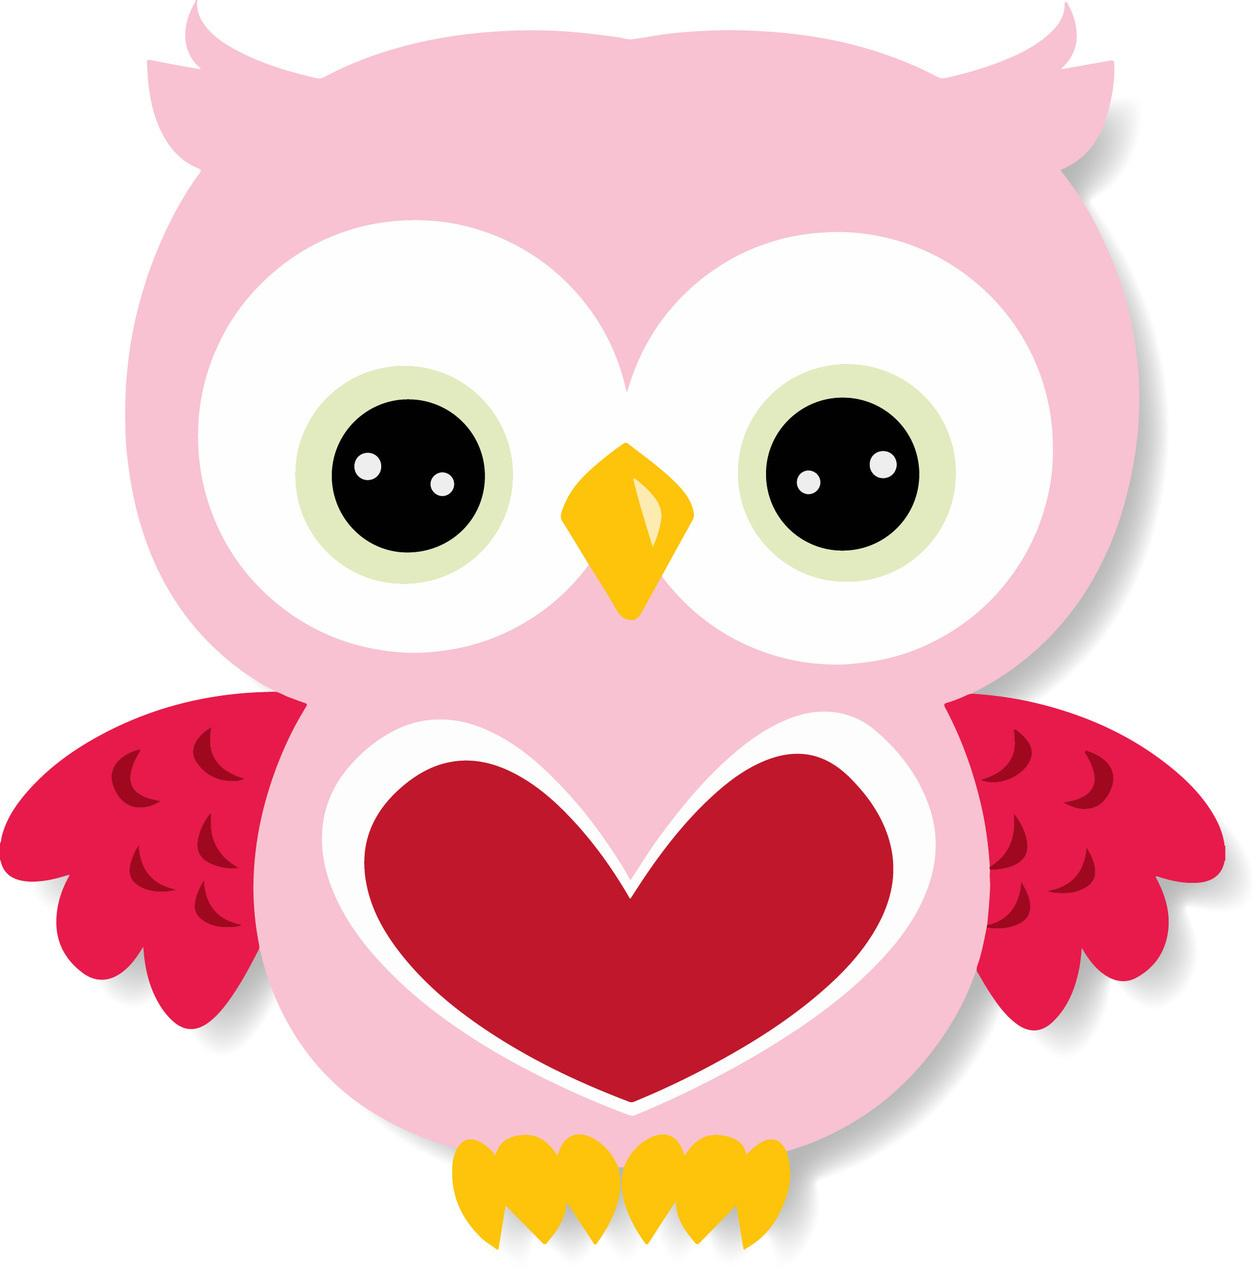 valentine owl clipart images pictures becuo 1mxtj2 clipart9b14 rh clipart info owl pictures clipart Owl Clip Art Black and White